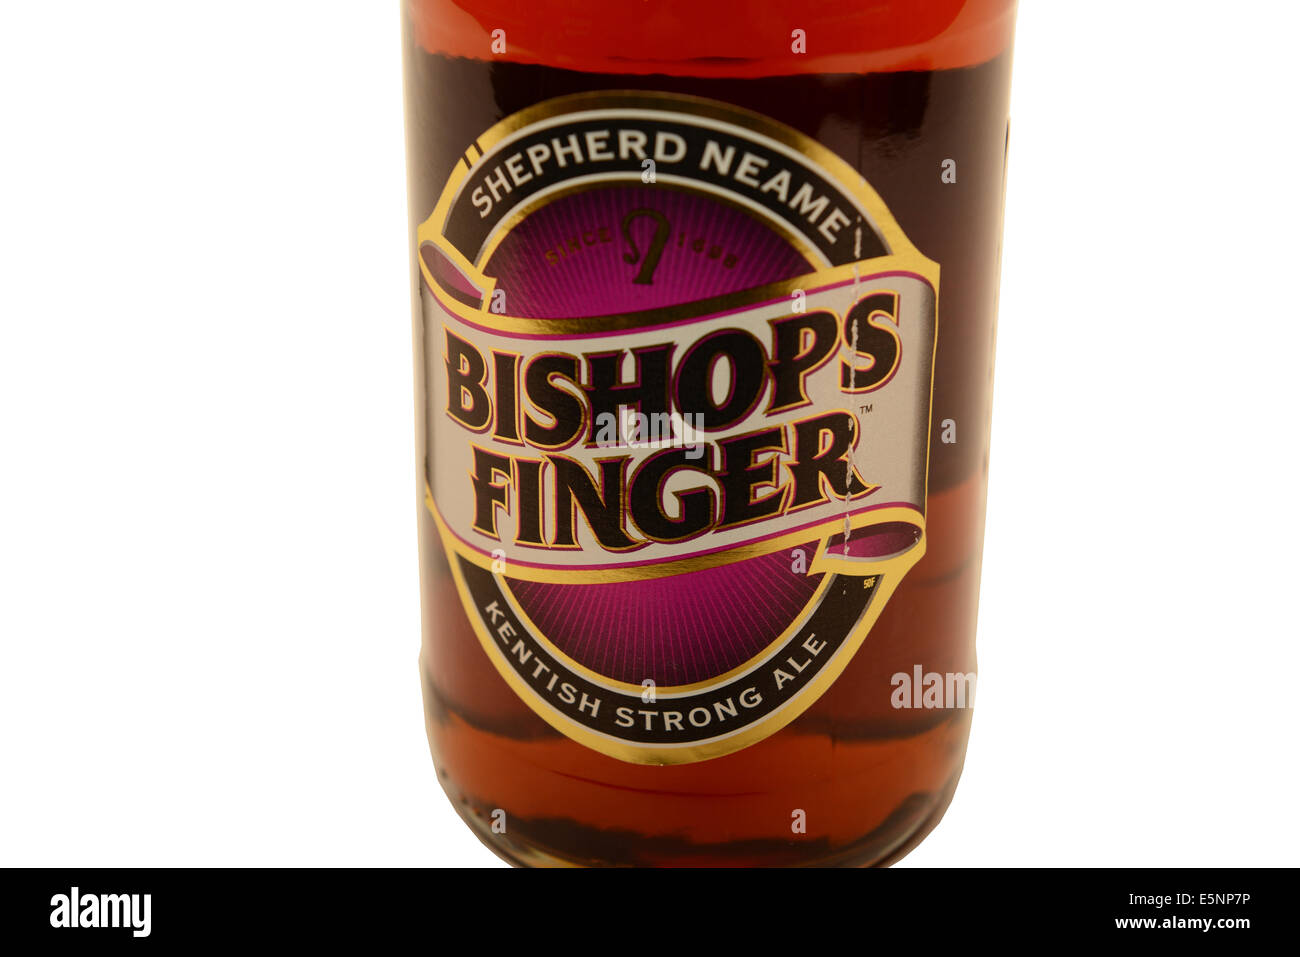 Bishops Finger strong ale - Stock Image